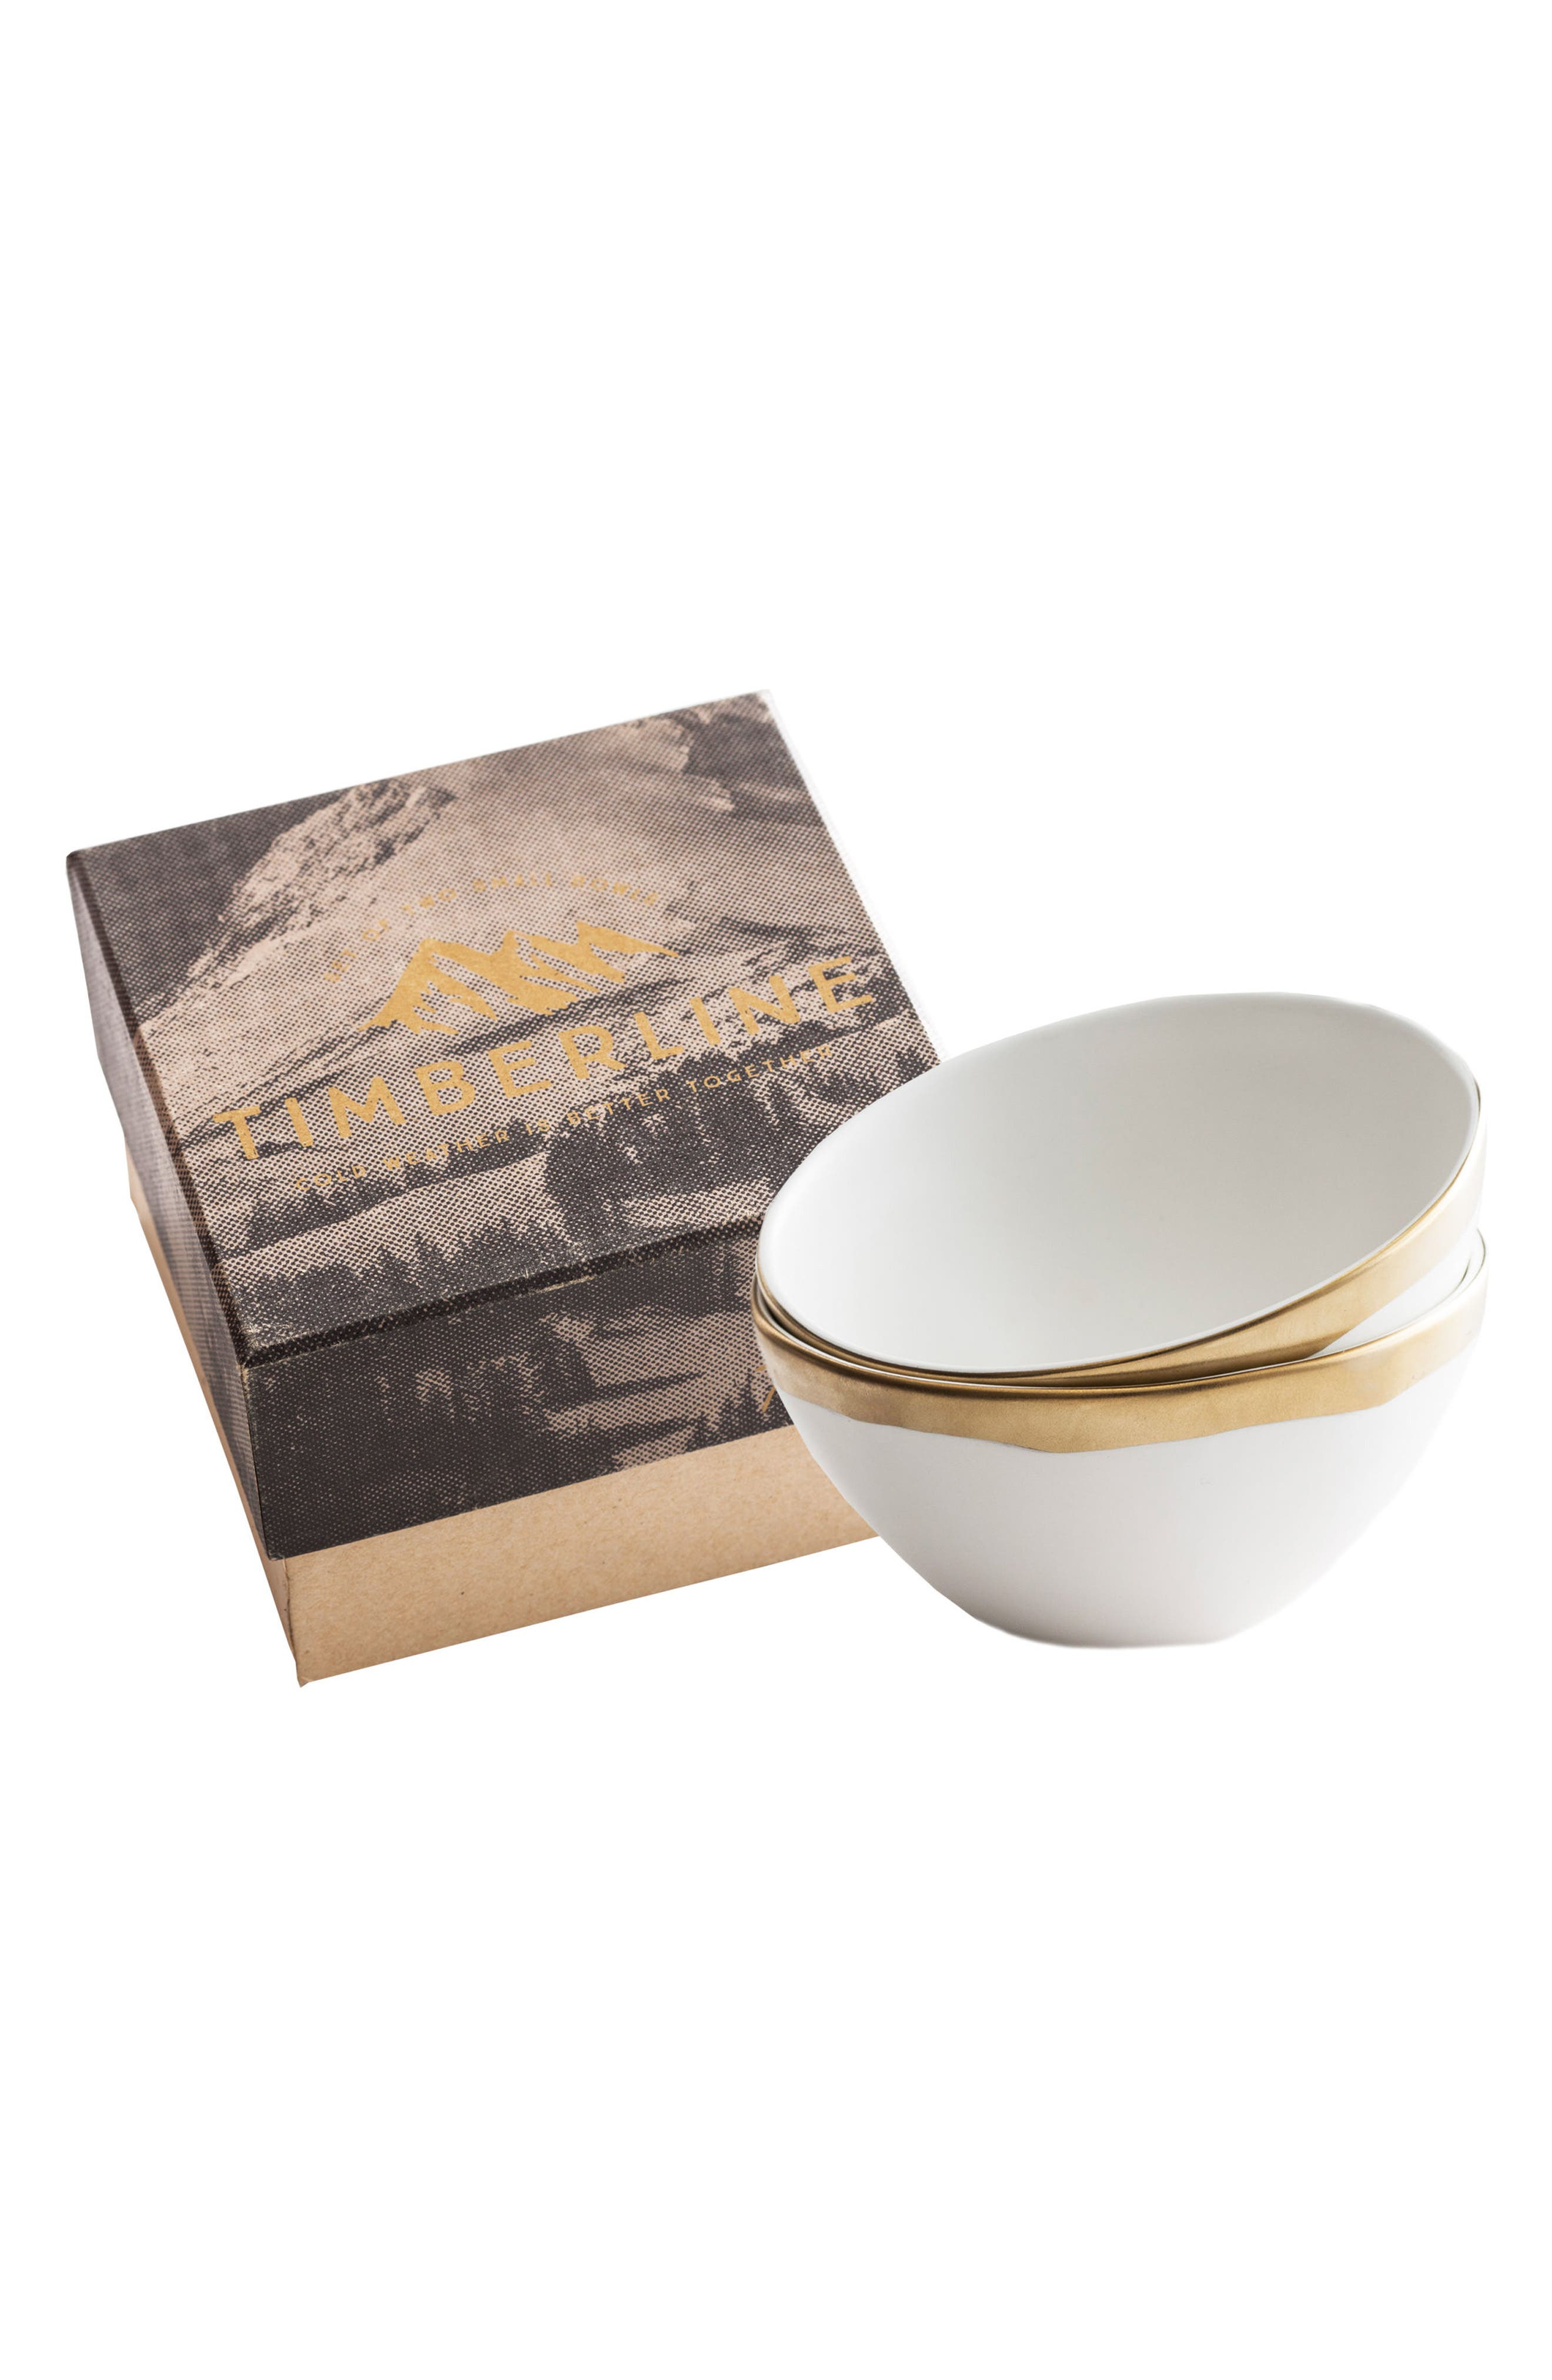 Timberline Set of 2 Porcelain Bowls,                         Main,                         color, White/ Gold